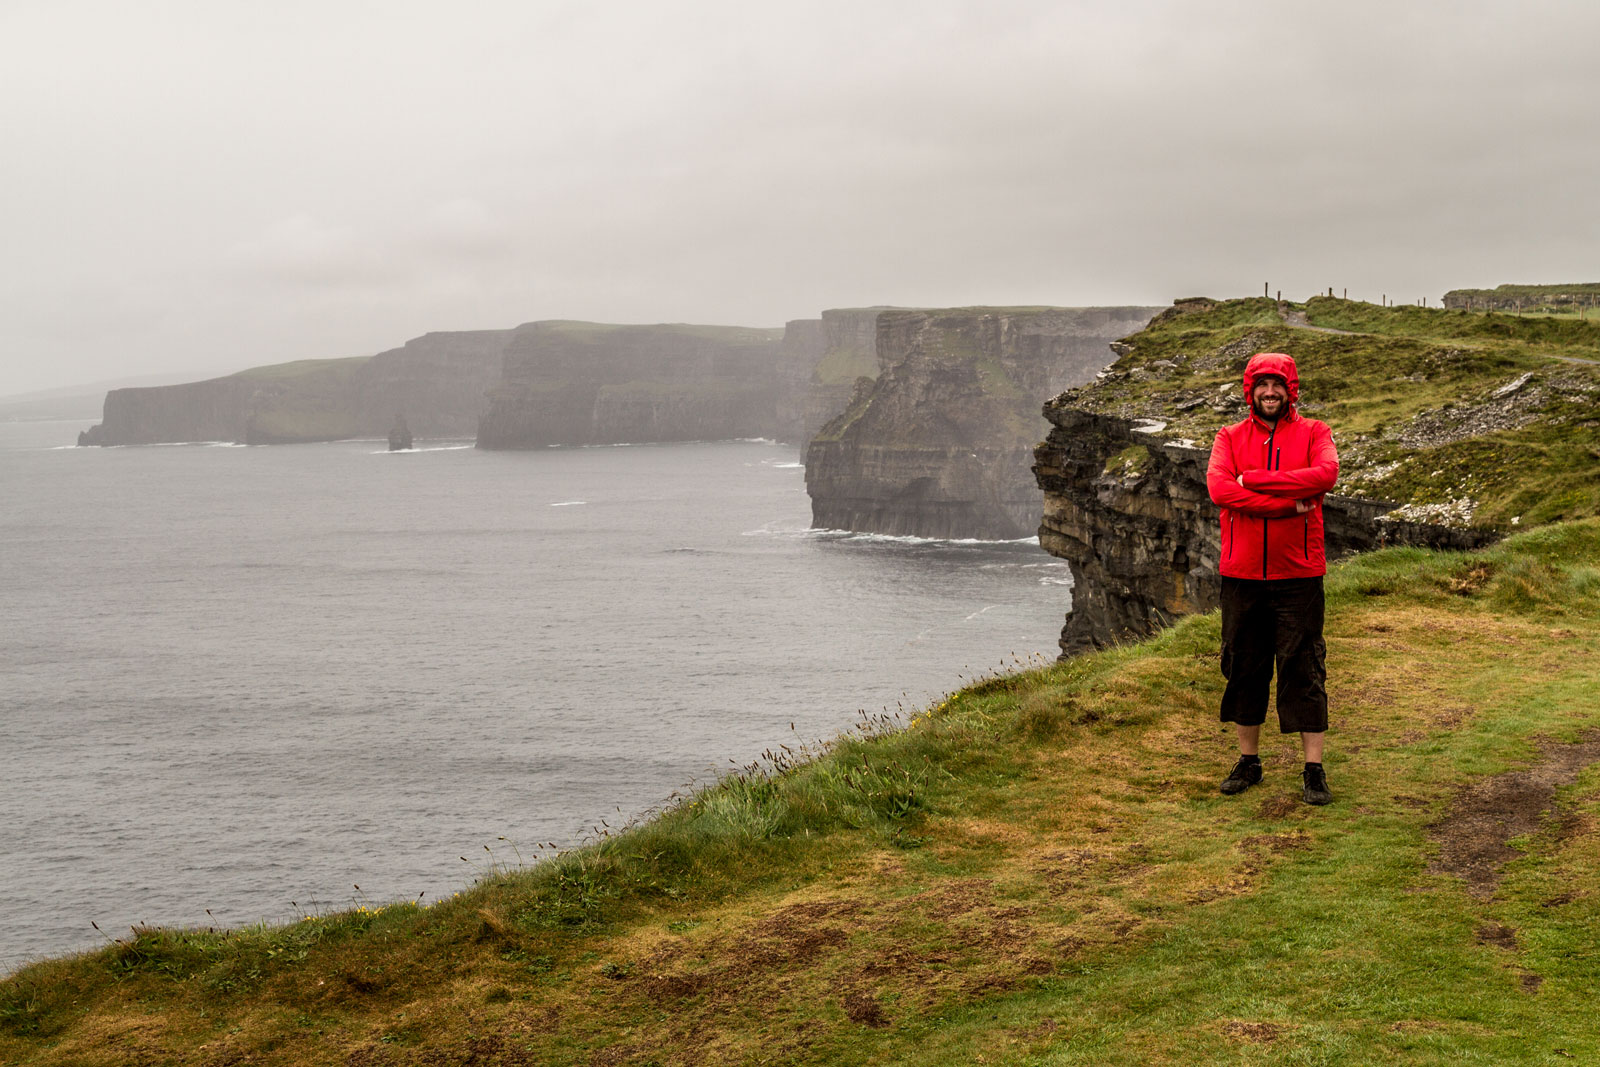 Willi vor den Cliffs of Moher in Irland